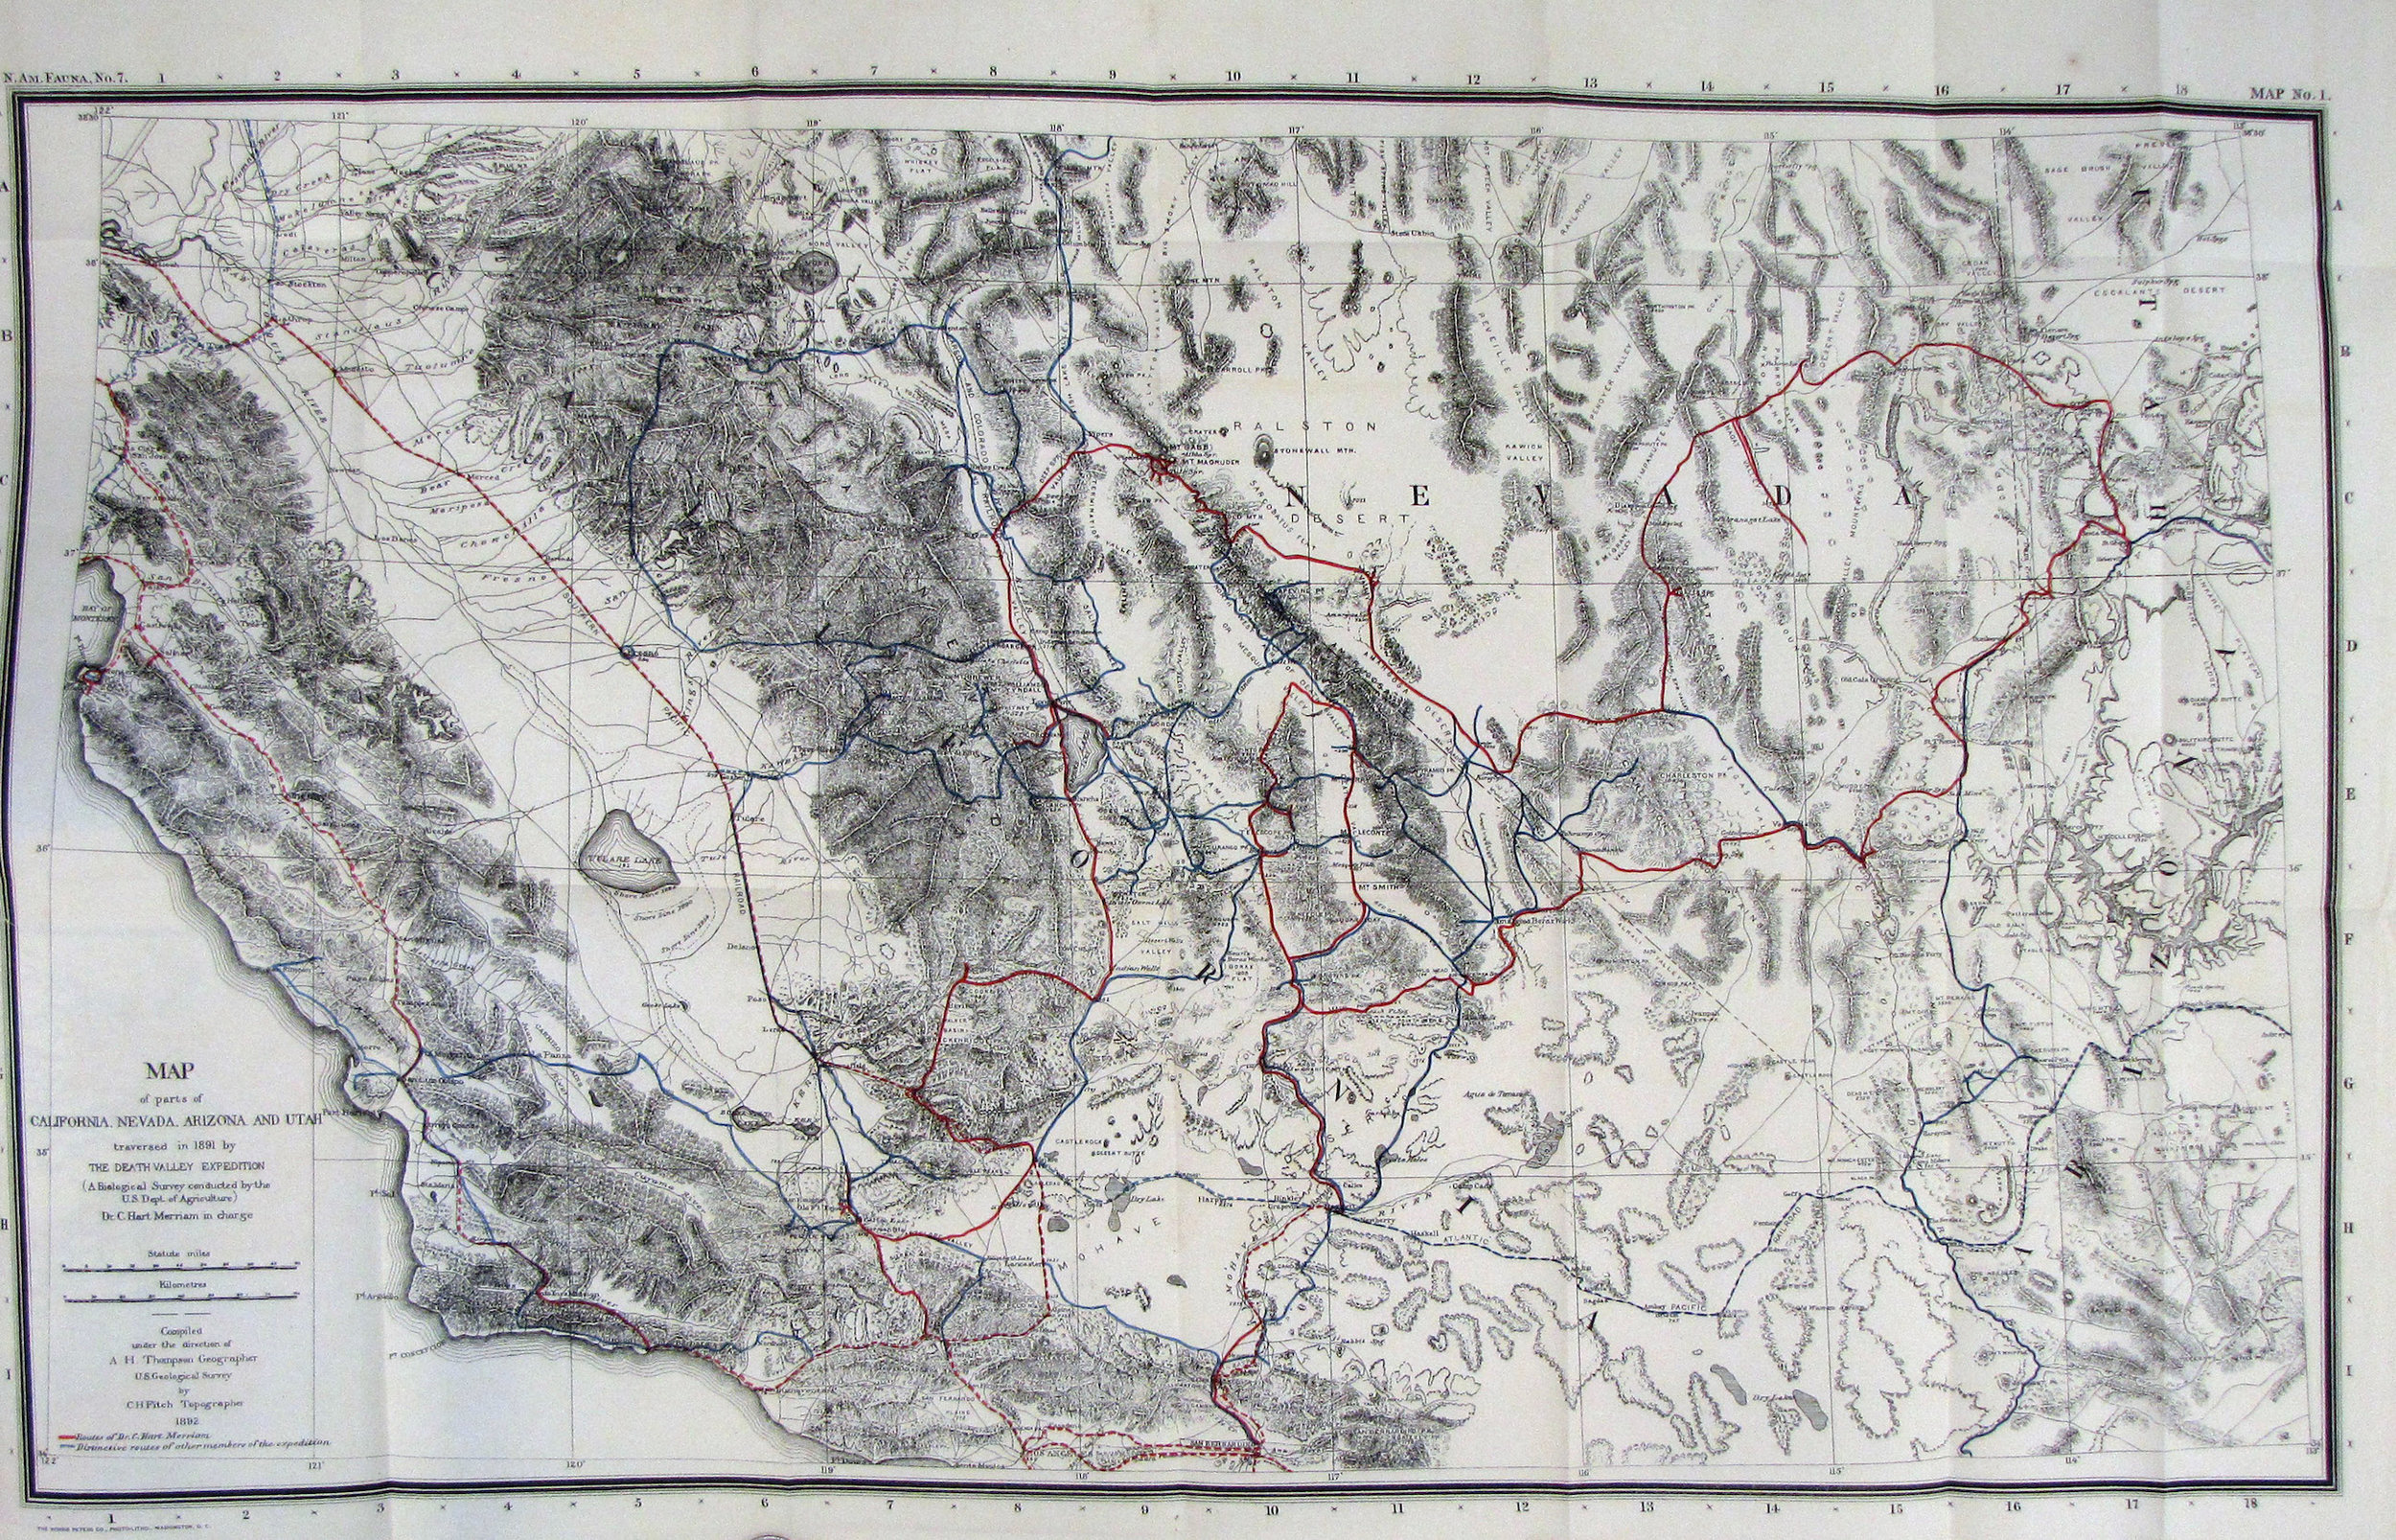 Map of parts of California, Nevada, Arizona, and Utah traversed in 1891 by The Death Valley Expedition